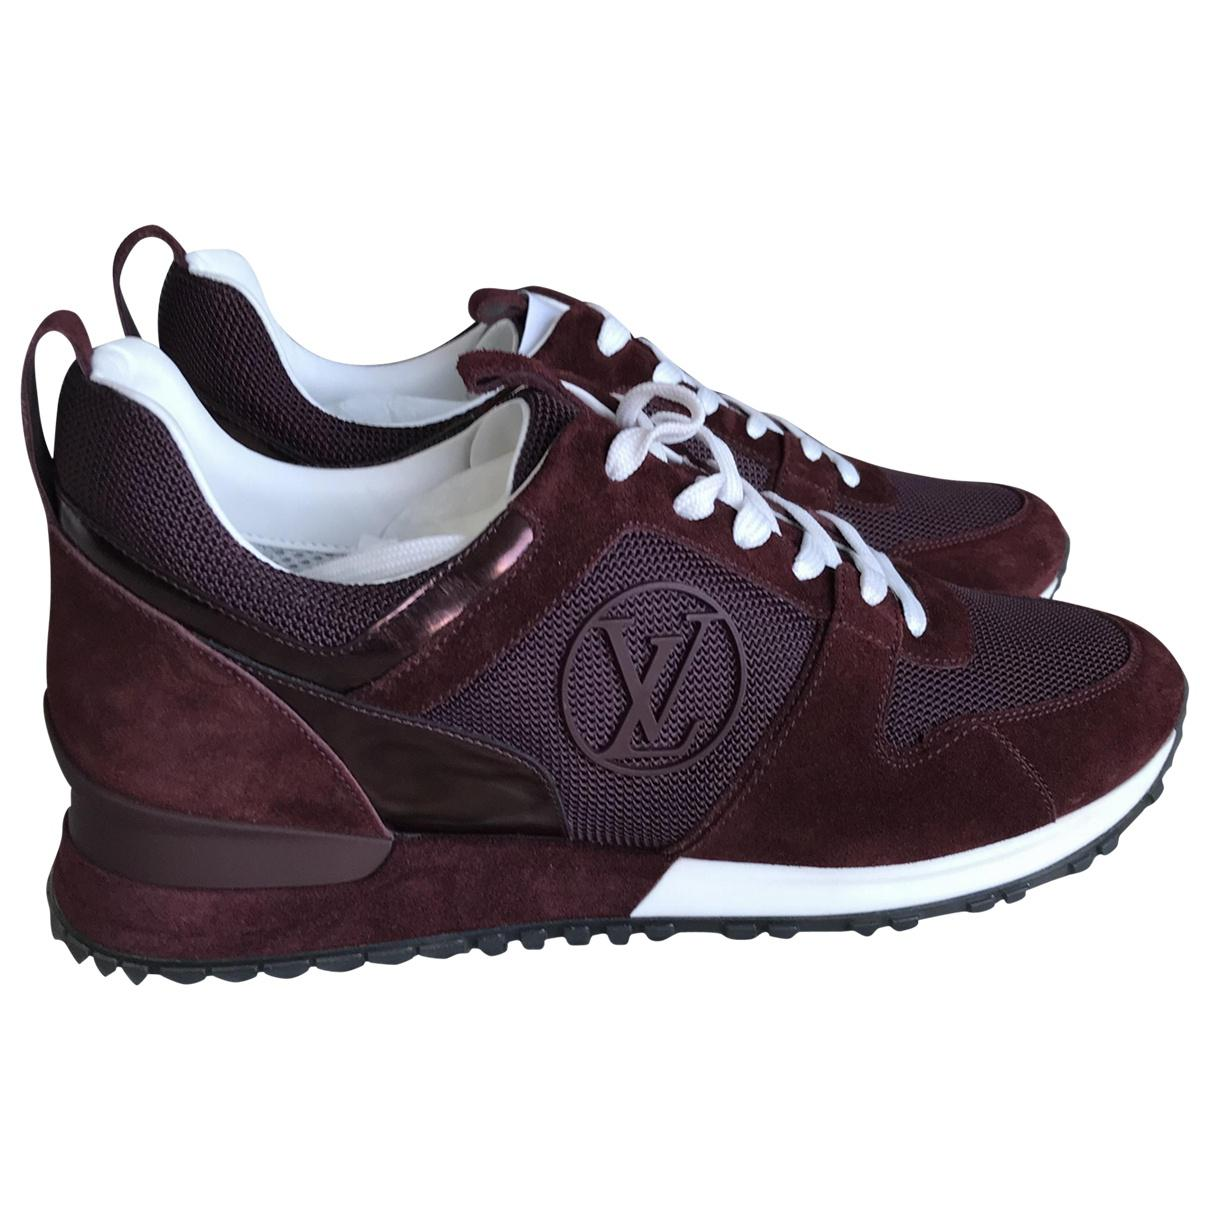 a05c1adc7881 Louis Vuitton Leather Trainers in Purple - Lyst